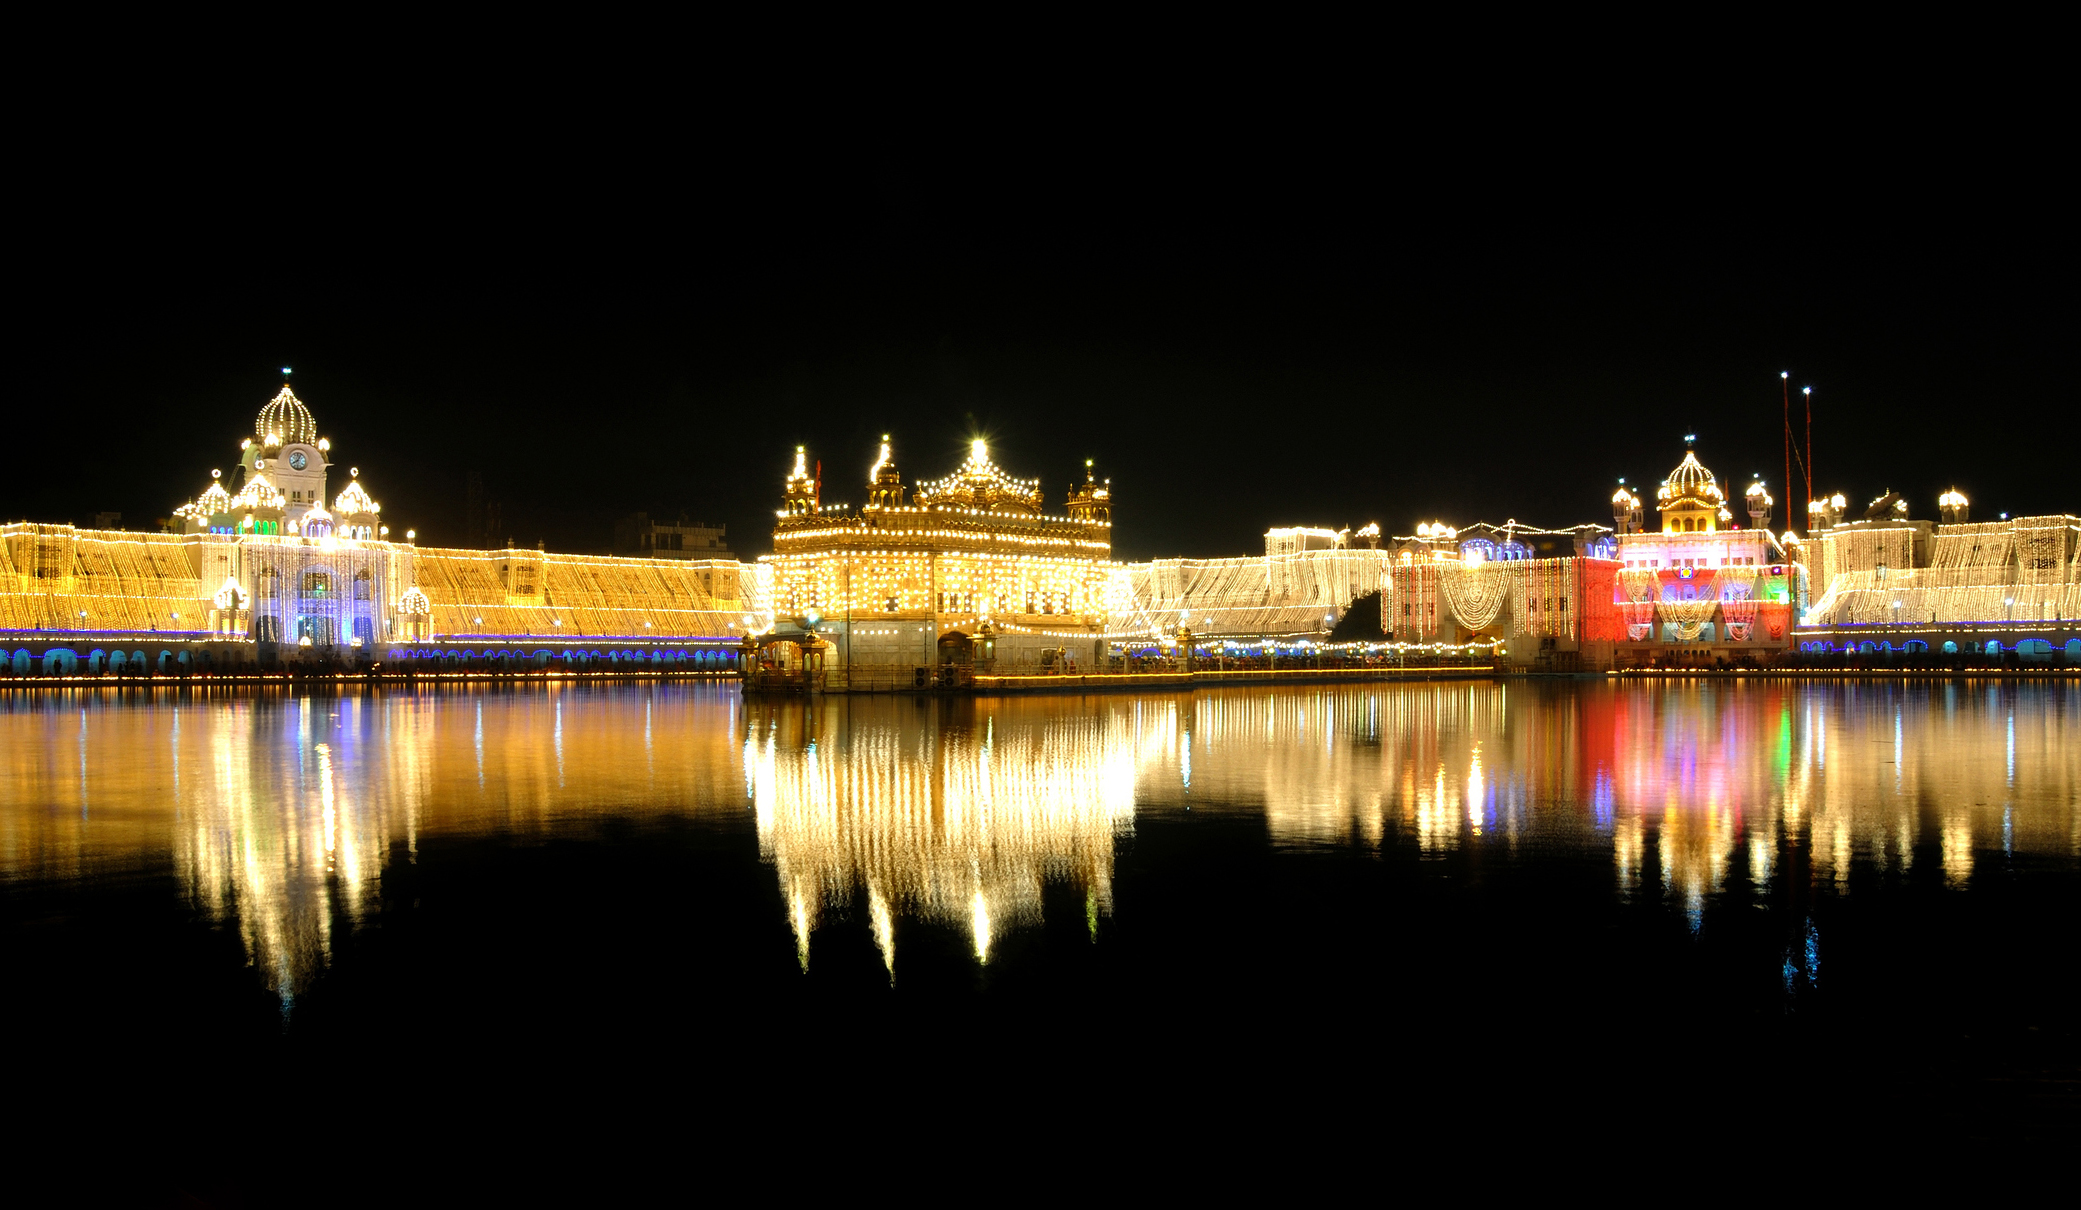 Diwali Festival of Lights | Golden Temple